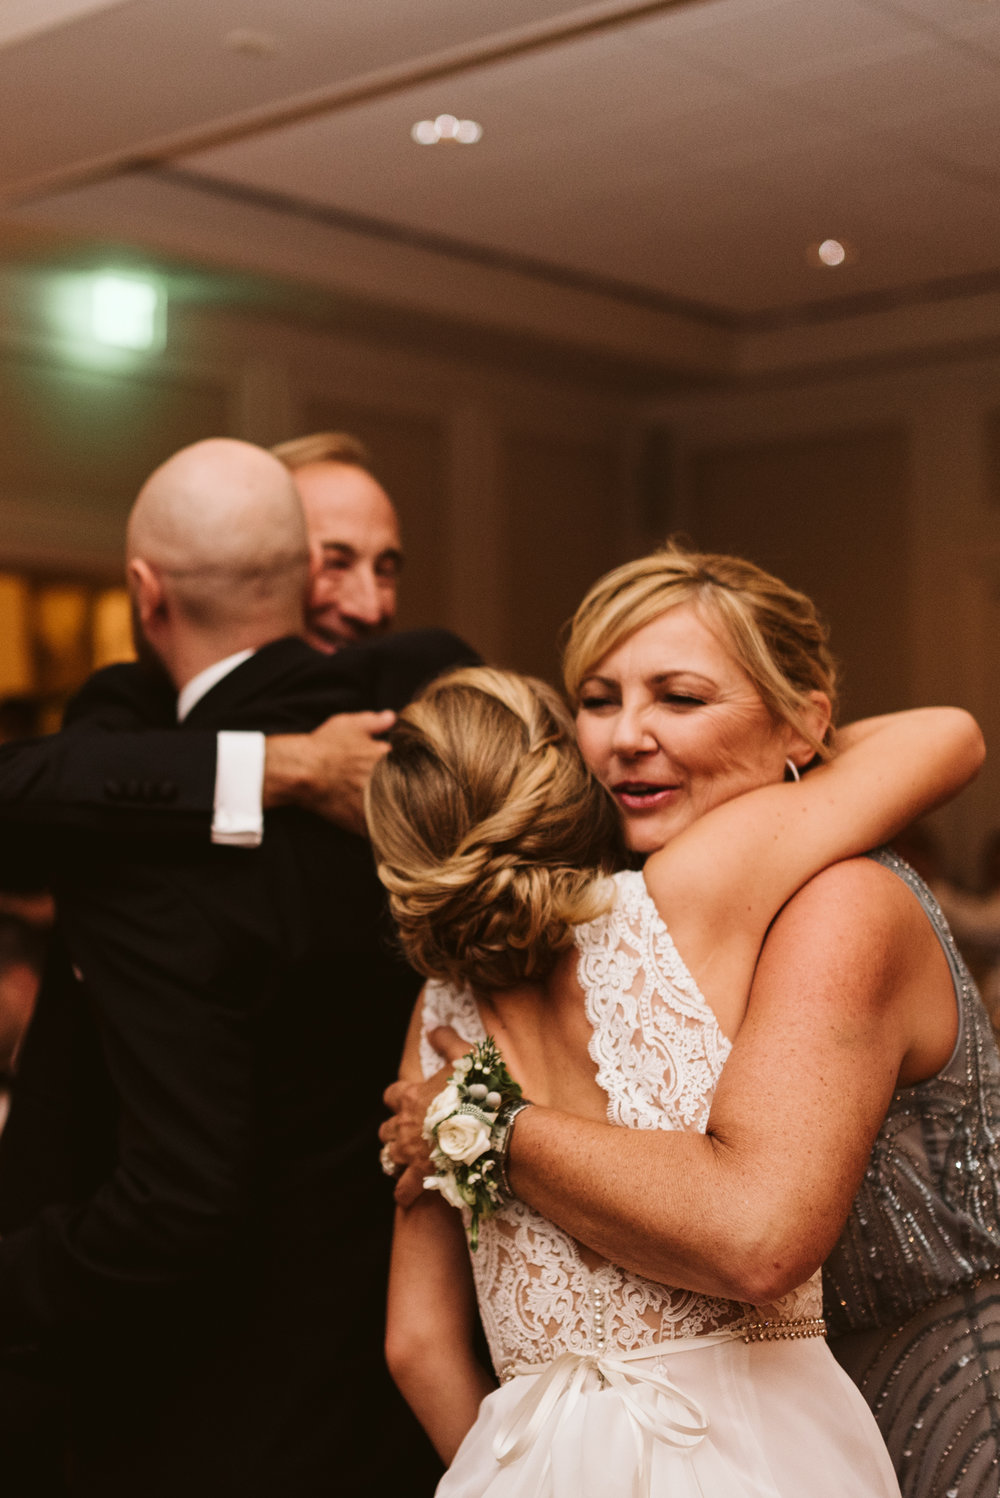 Elegant, Columbia Country Club, Chevy Chase Maryland, Baltimore Wedding Photographer, Classic, Traditional, Bride and Groom Hugging Parents After Toasts, Sweet Hairafter